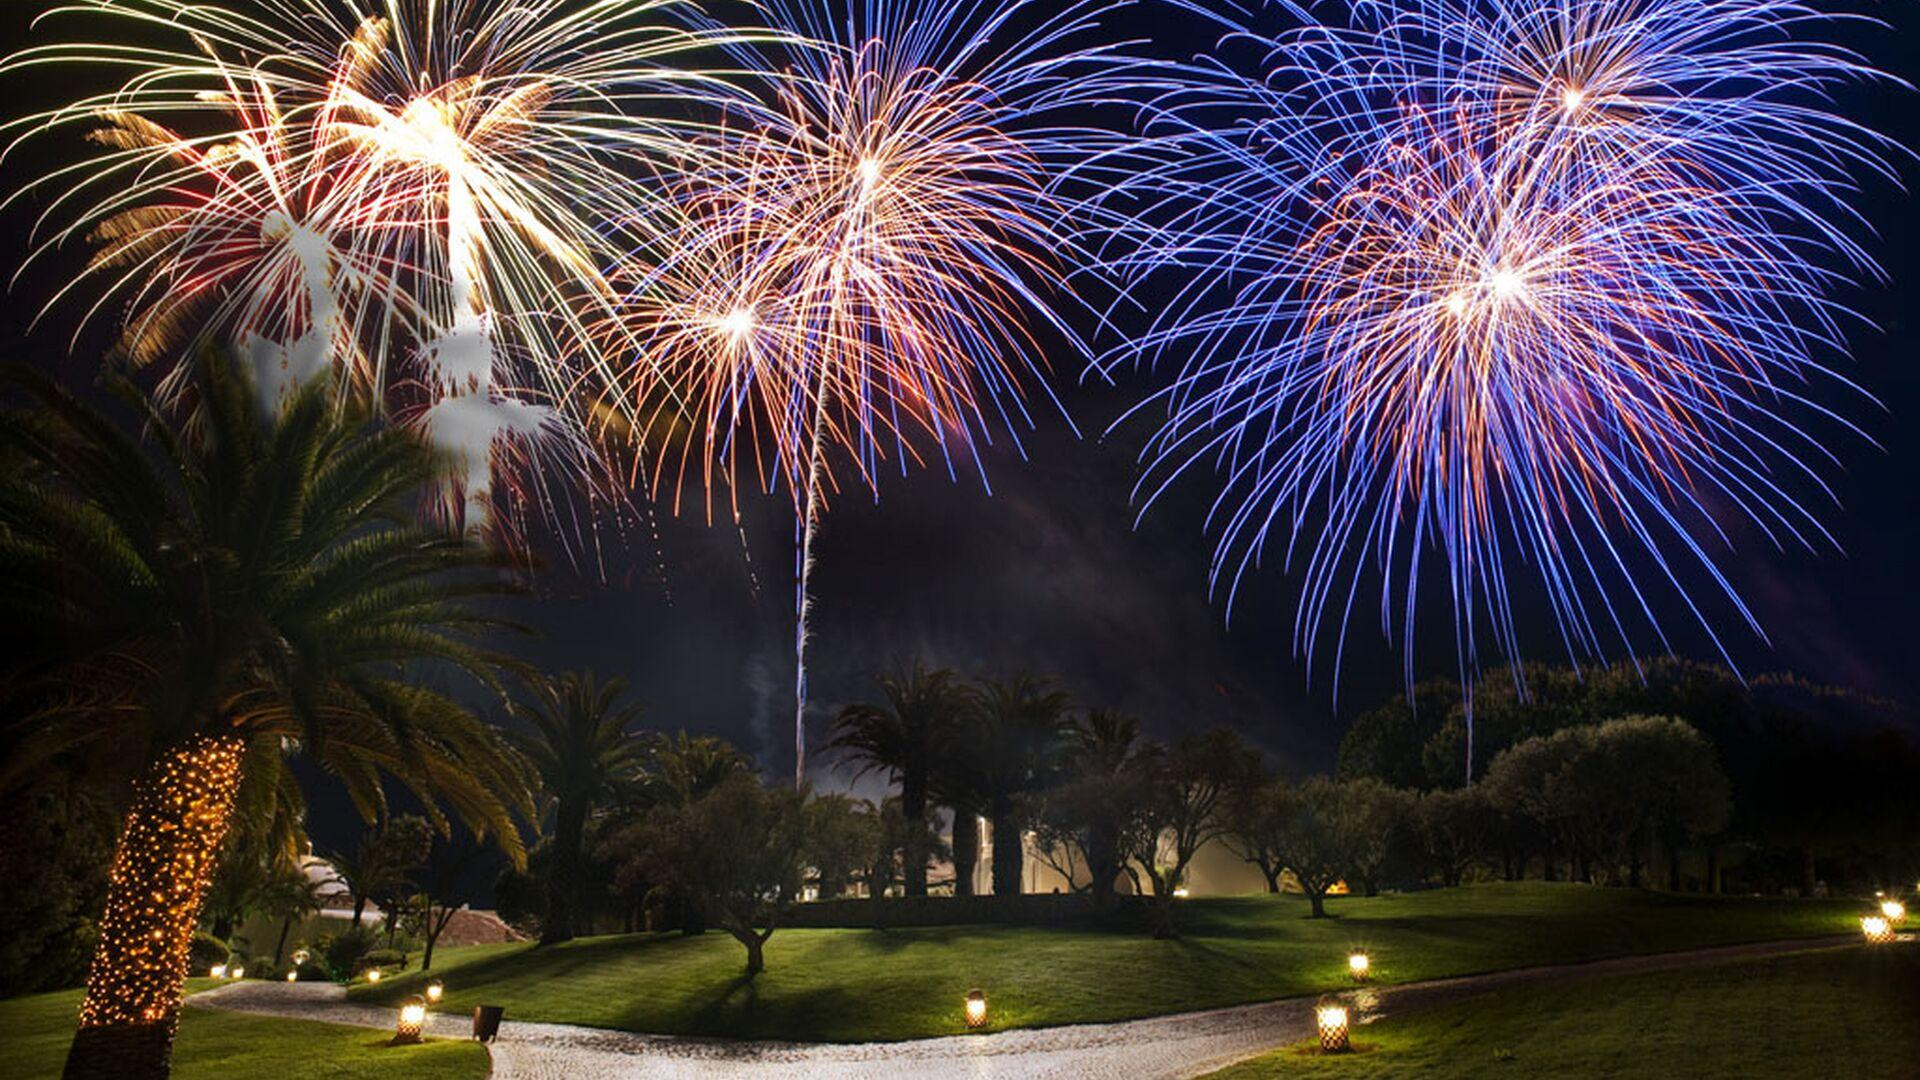 Celebrations and Events: Fire work spectacle.